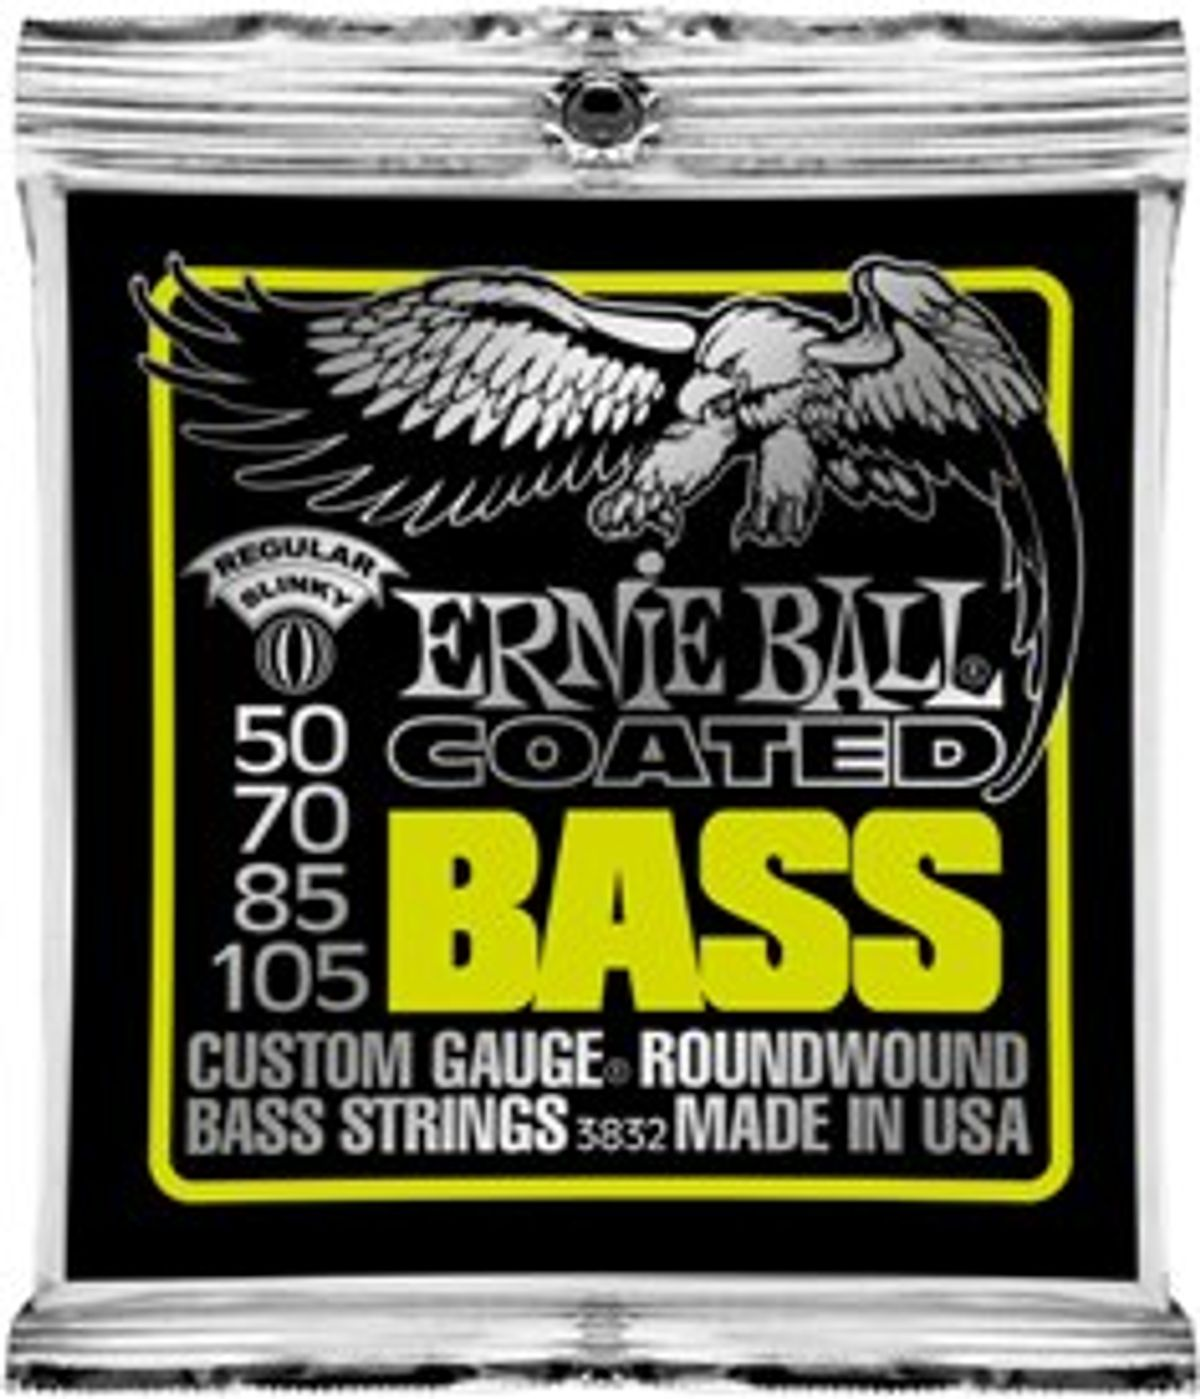 Ernie Ball Releases New Coated Bass Strings